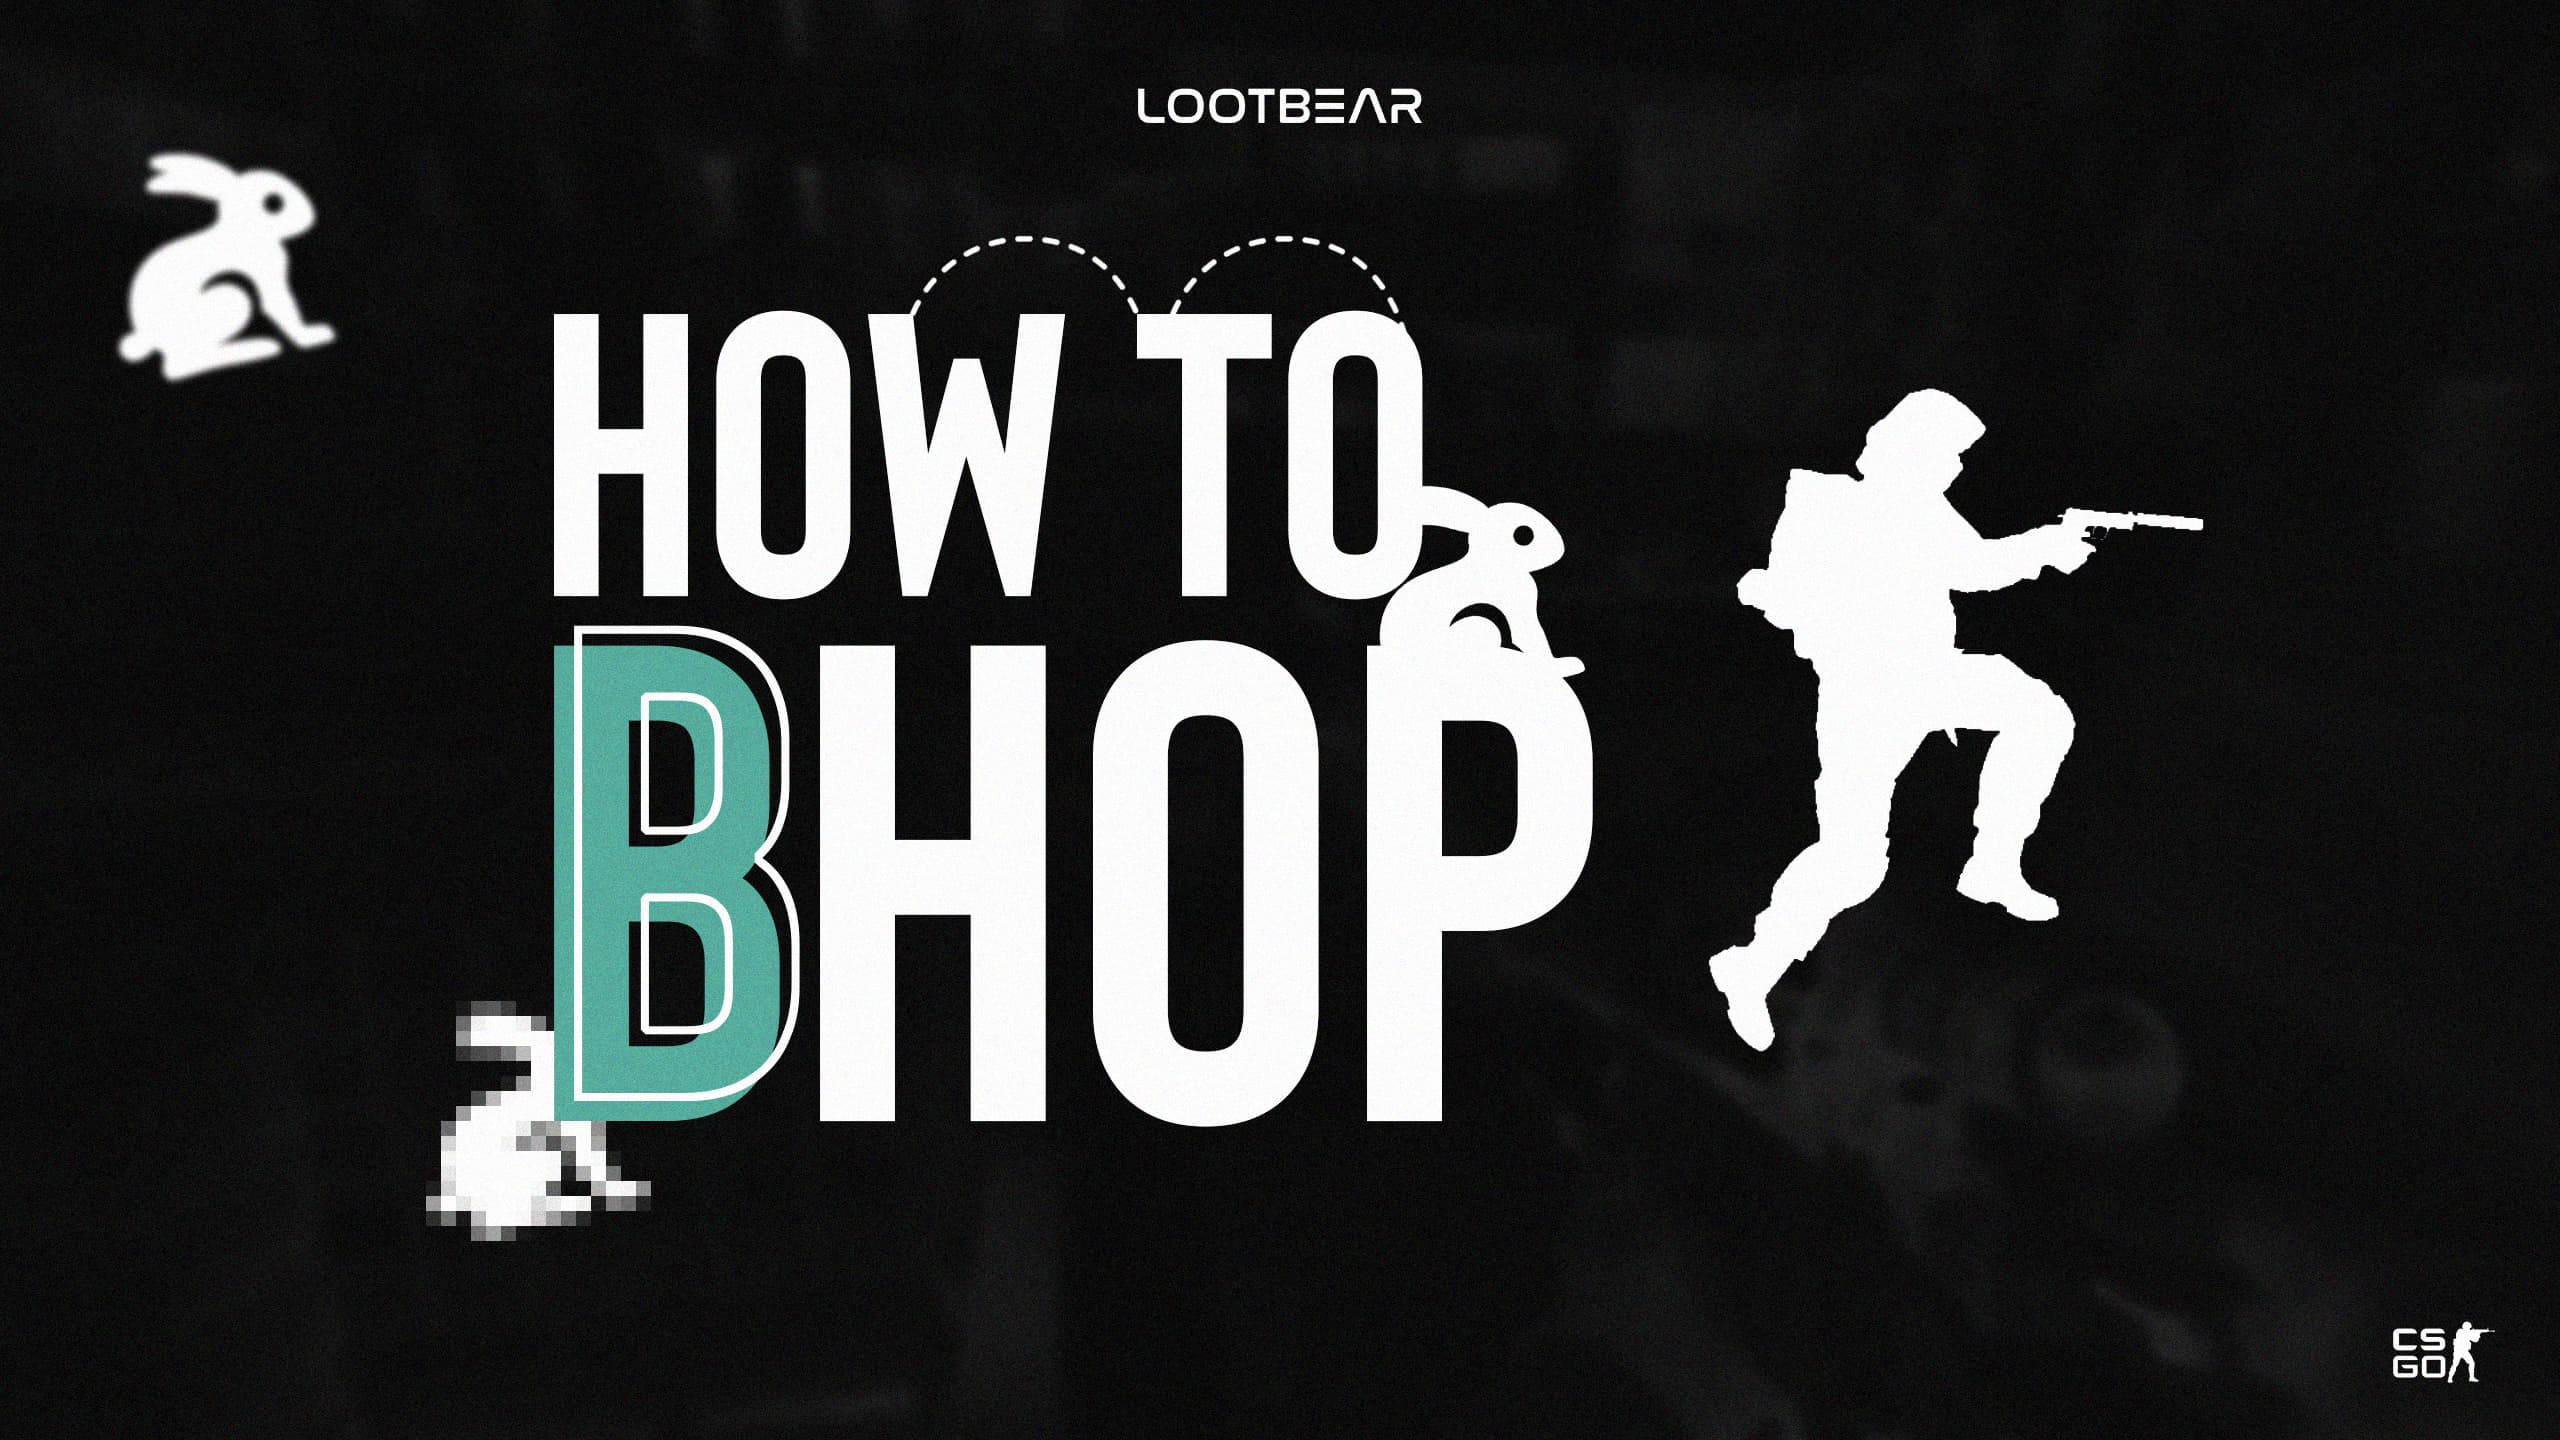 how to bhop in csgo